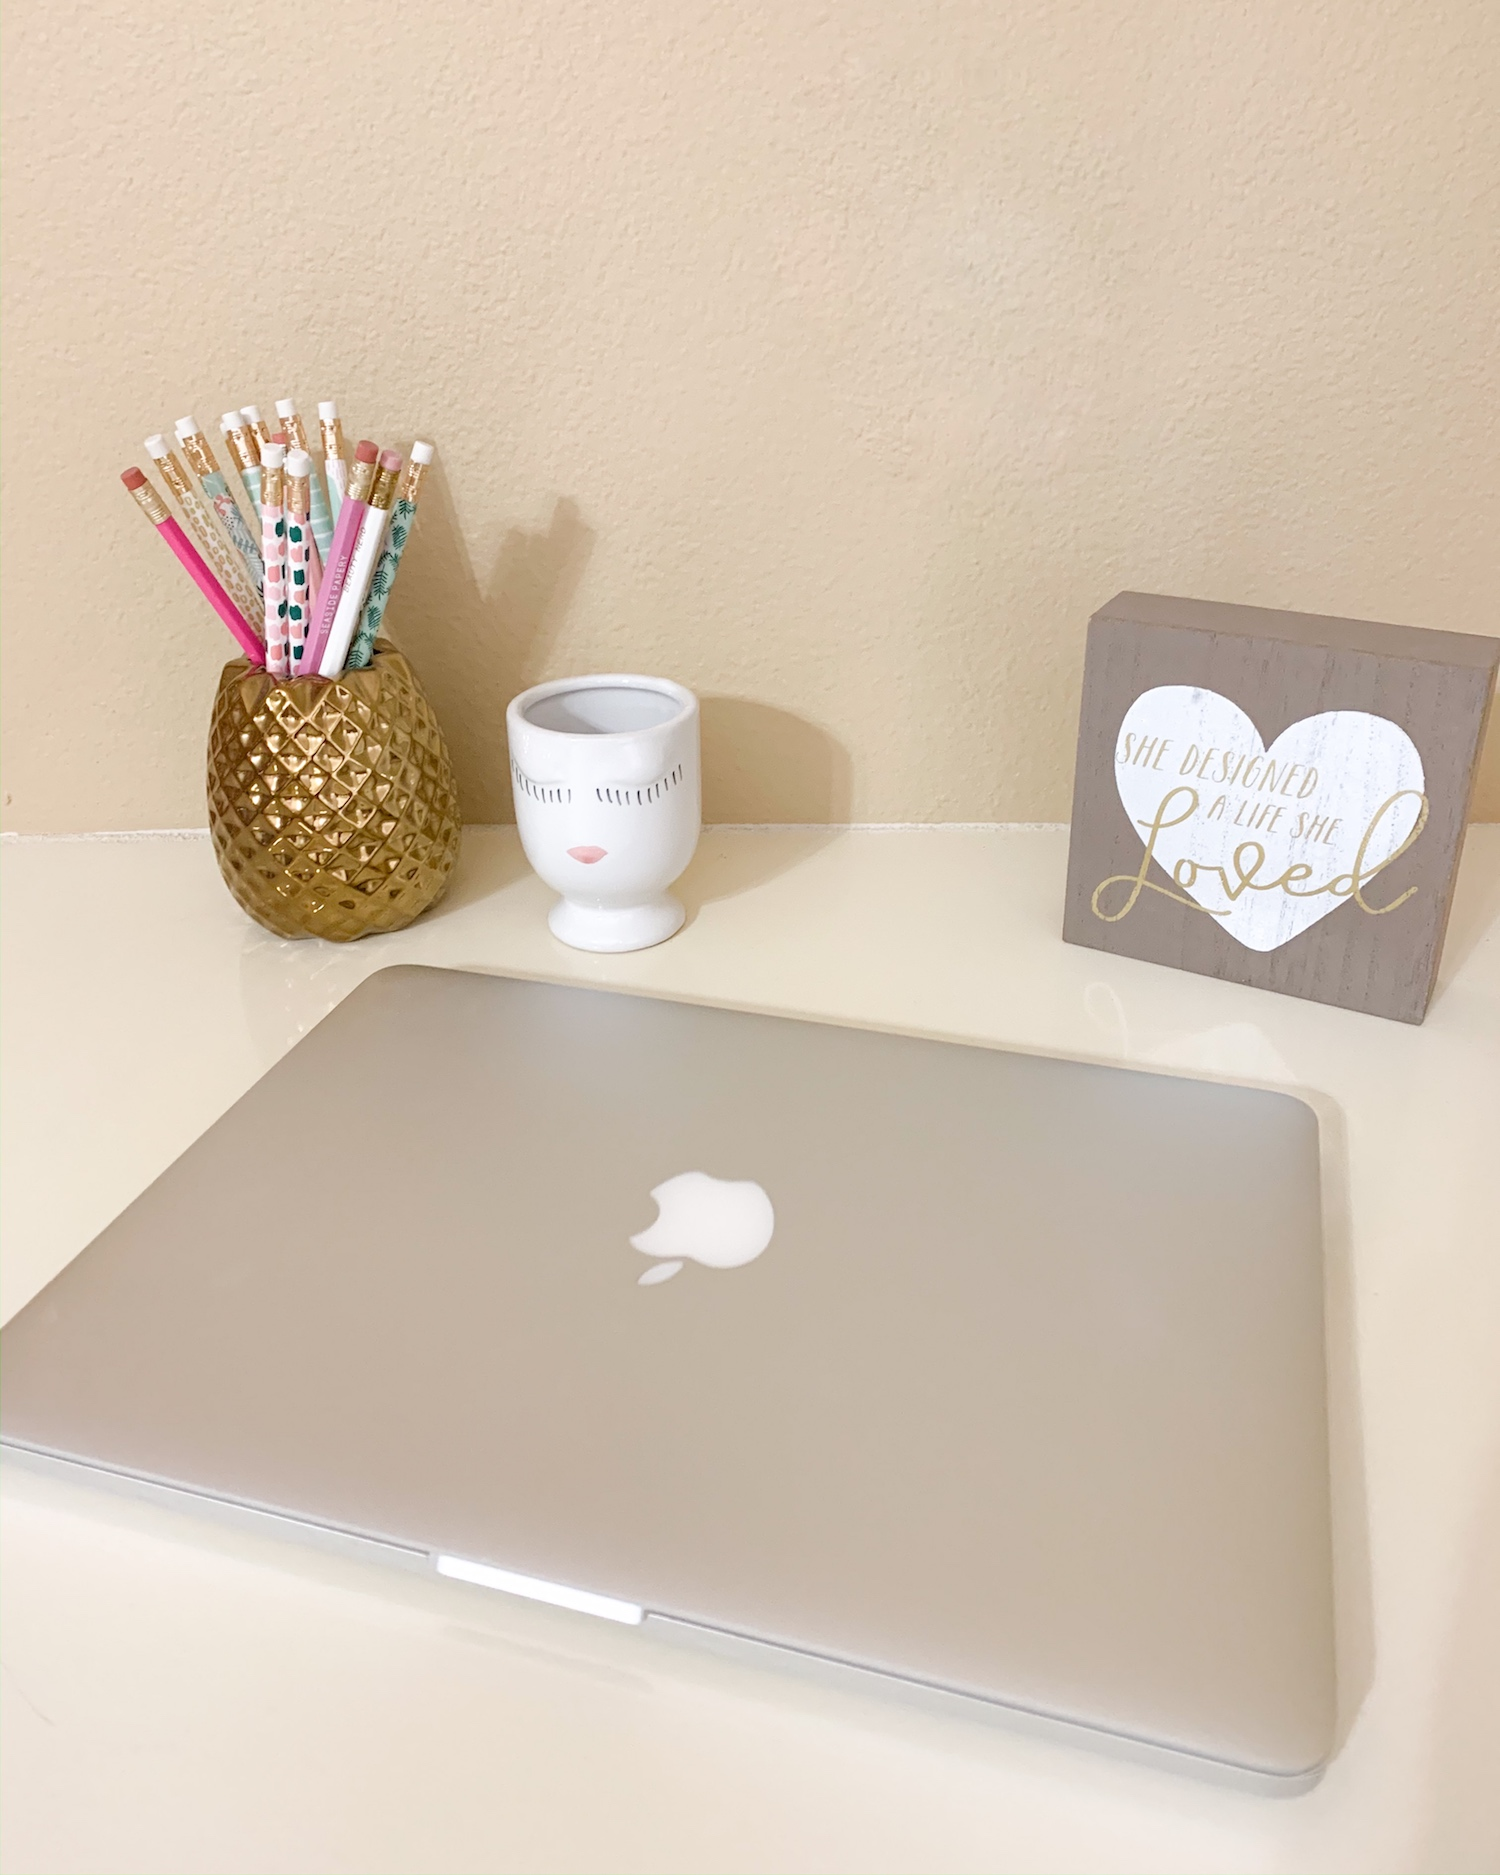 9 Tips for Working from Home While Social Distancing for COVID-19 outbreak